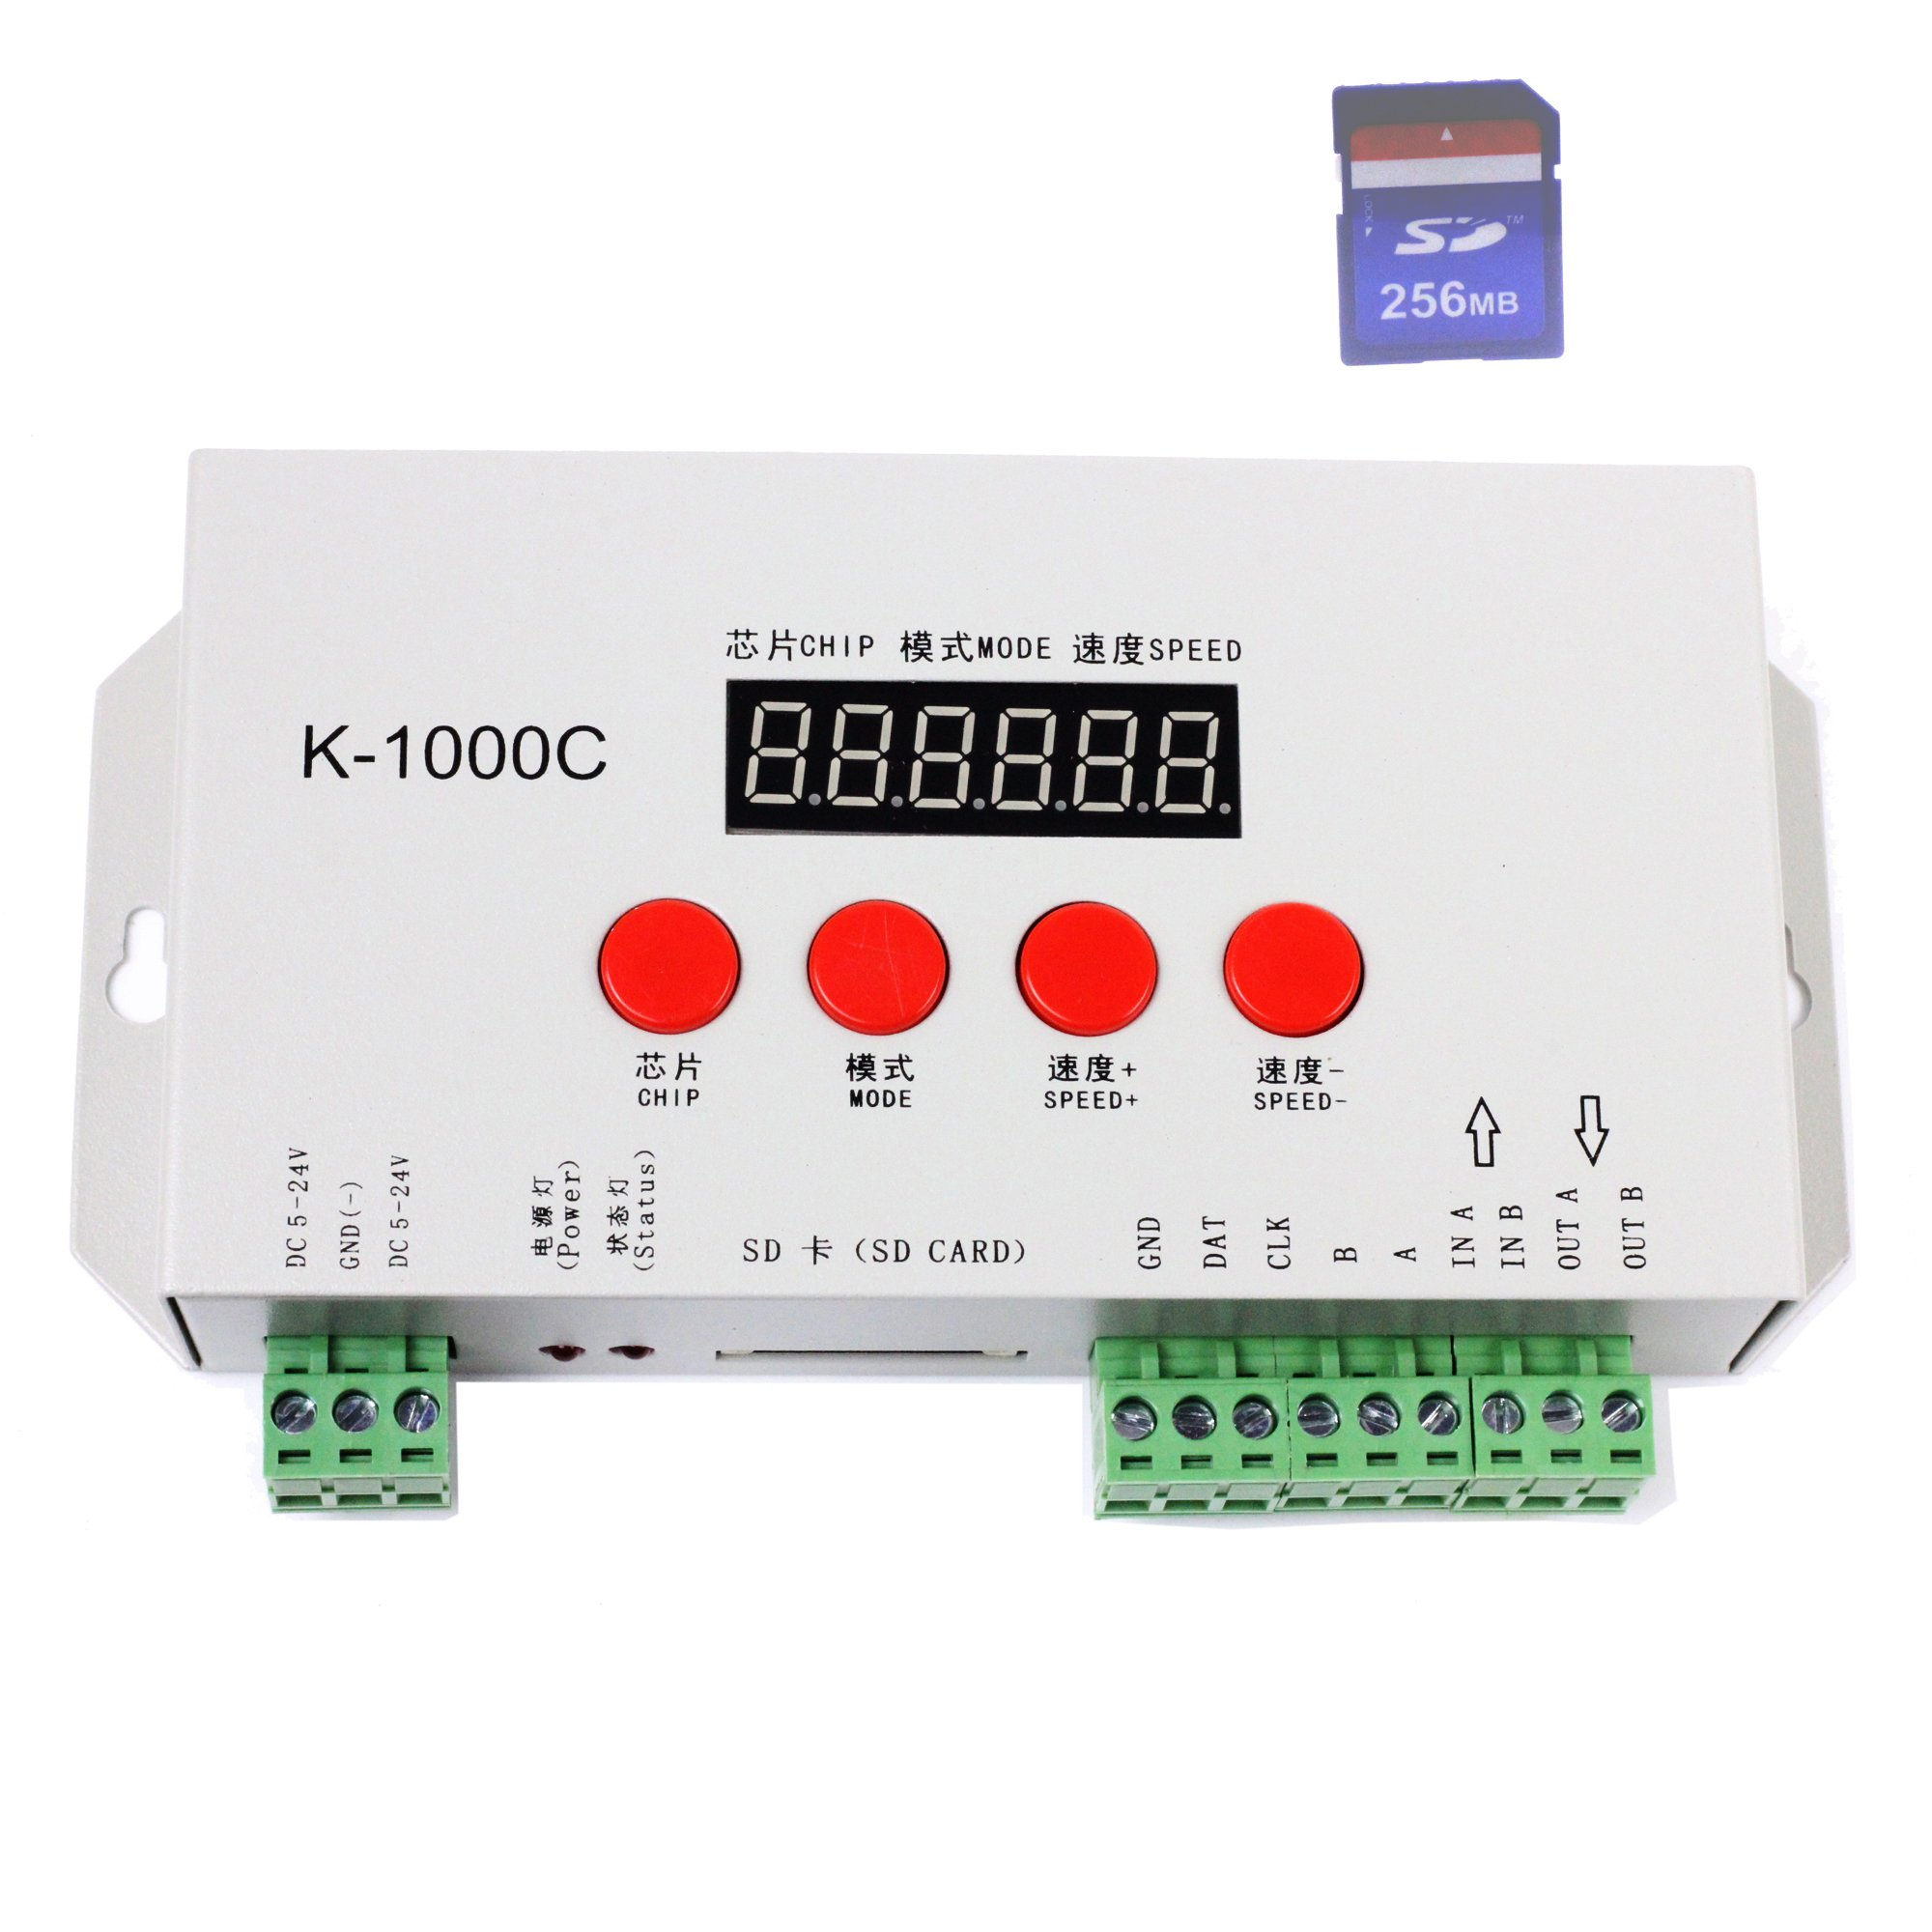 INVOLT K-1000C SD Card WS2812B LED Controller, T-1000S upgraded version, compatible with WS2812B APA102 SK6812 WS2811 WS2801 Addressable Programmable LED Strip, DC5-24V, support max. 2048 Pixels